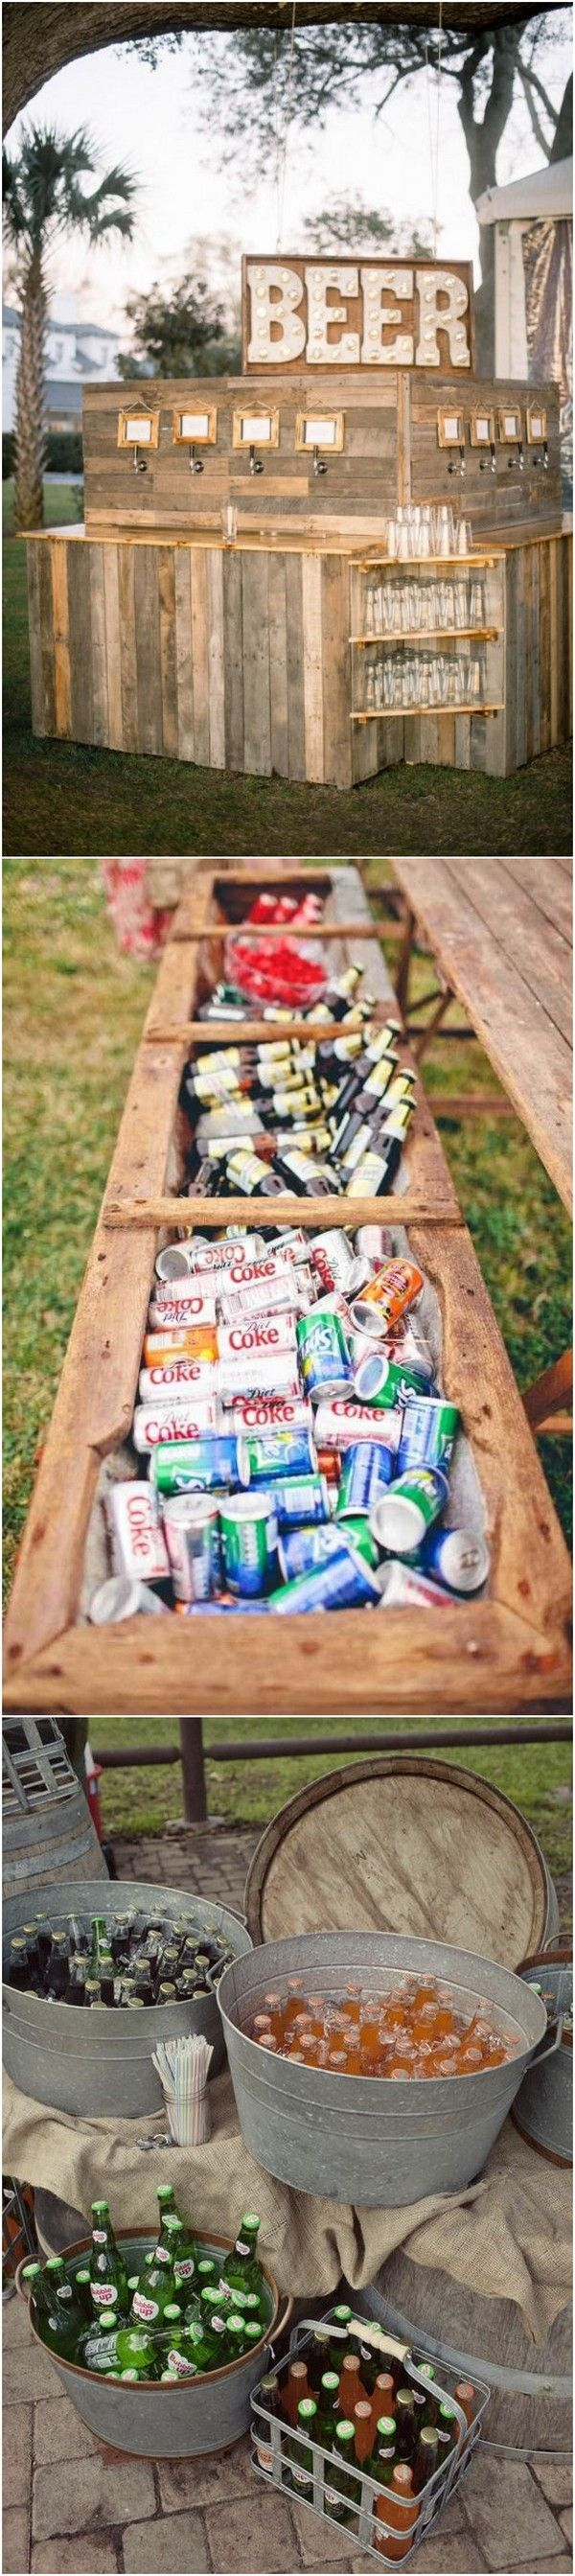 amazing drink stations for outdoor wedding ideas drink bar bar